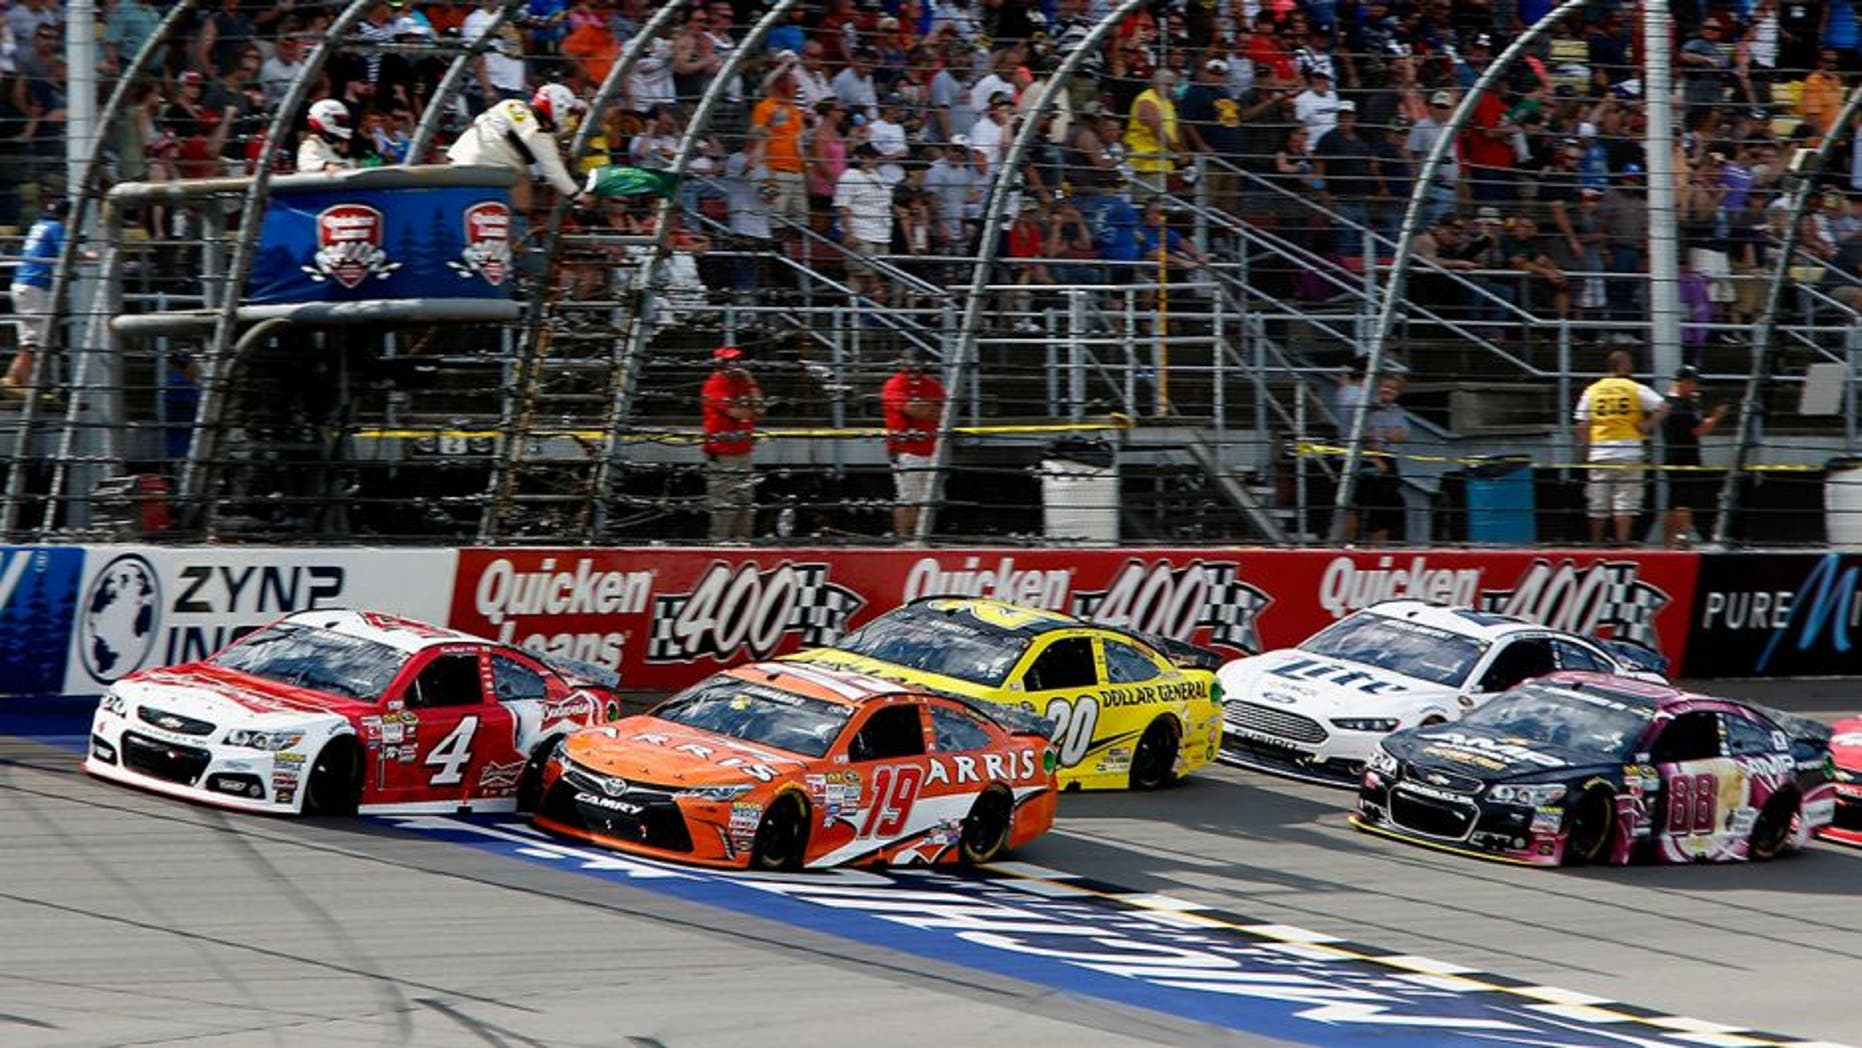 BROOKLYN, MI - JUNE 14: Carl Edwards, driver of the #19 ARRIS Toyota, and Kevin Harvick, driver of the #4 Budweiser/Jimmy John's Chevrolet, lead the field to a restart during the NASCAR Sprint Cup Series Quicken Loans 400 at Michigan International Speedway on June 14, 2015 in Brooklyn, Michigan. (Photo by Jerry Markland/Getty Images)